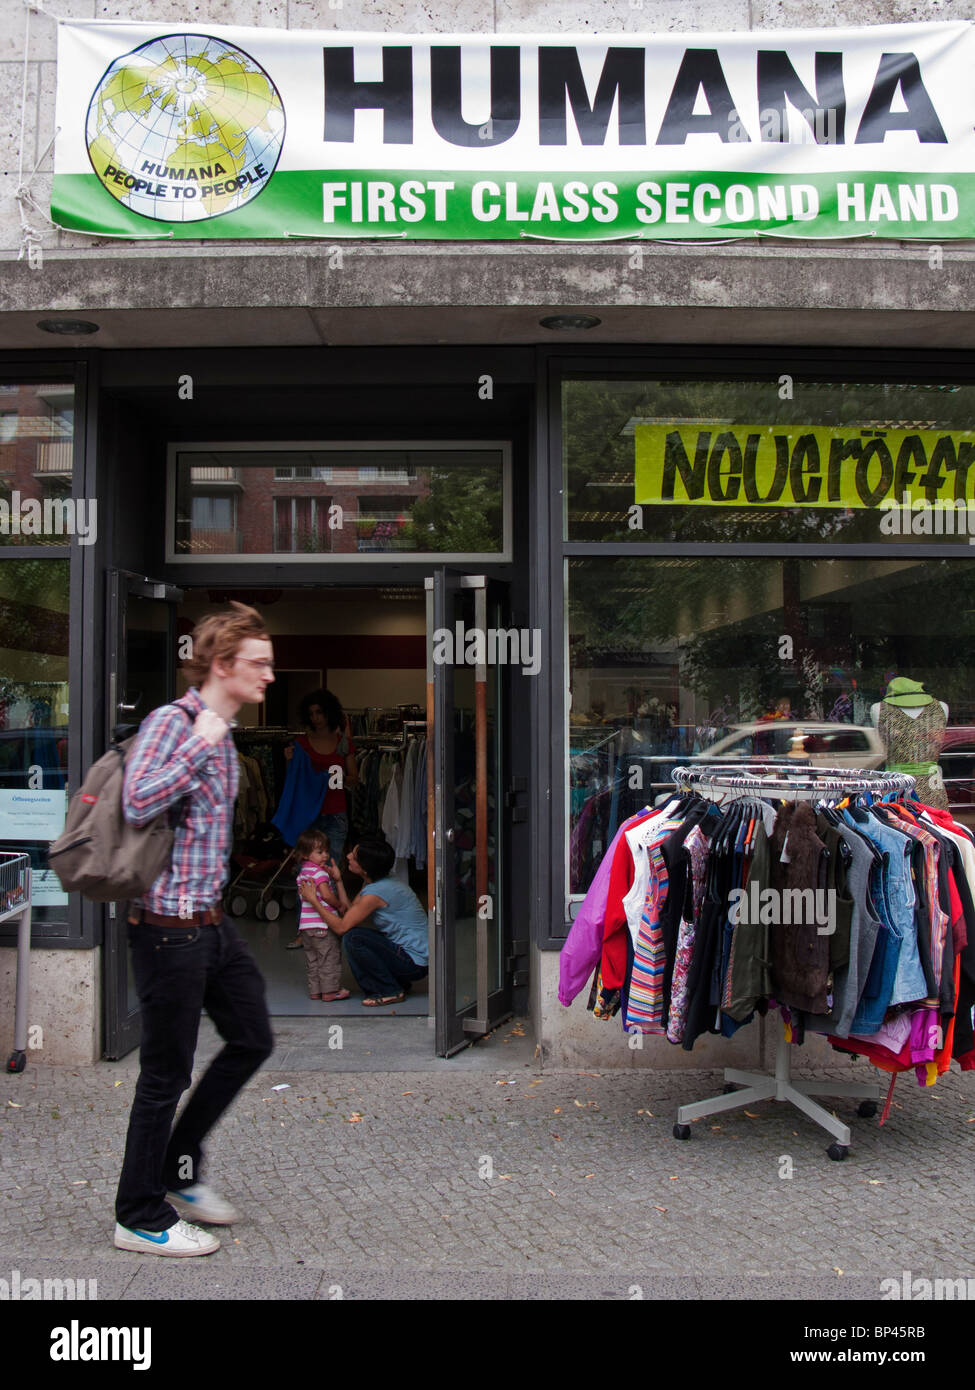 Humana second hand charity shop in Berlin Germany - Stock Image